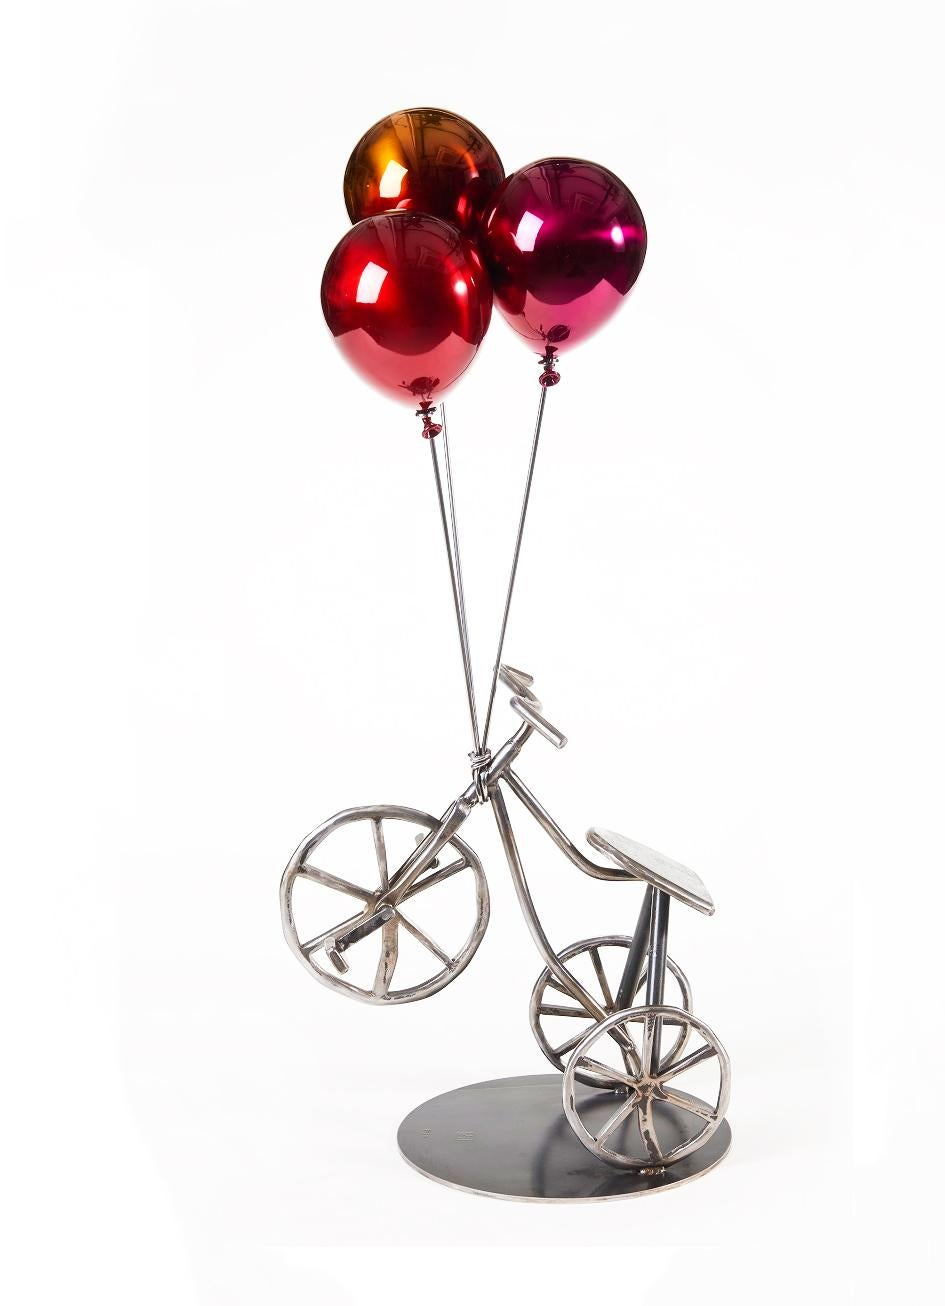 Balloons & Tricycle